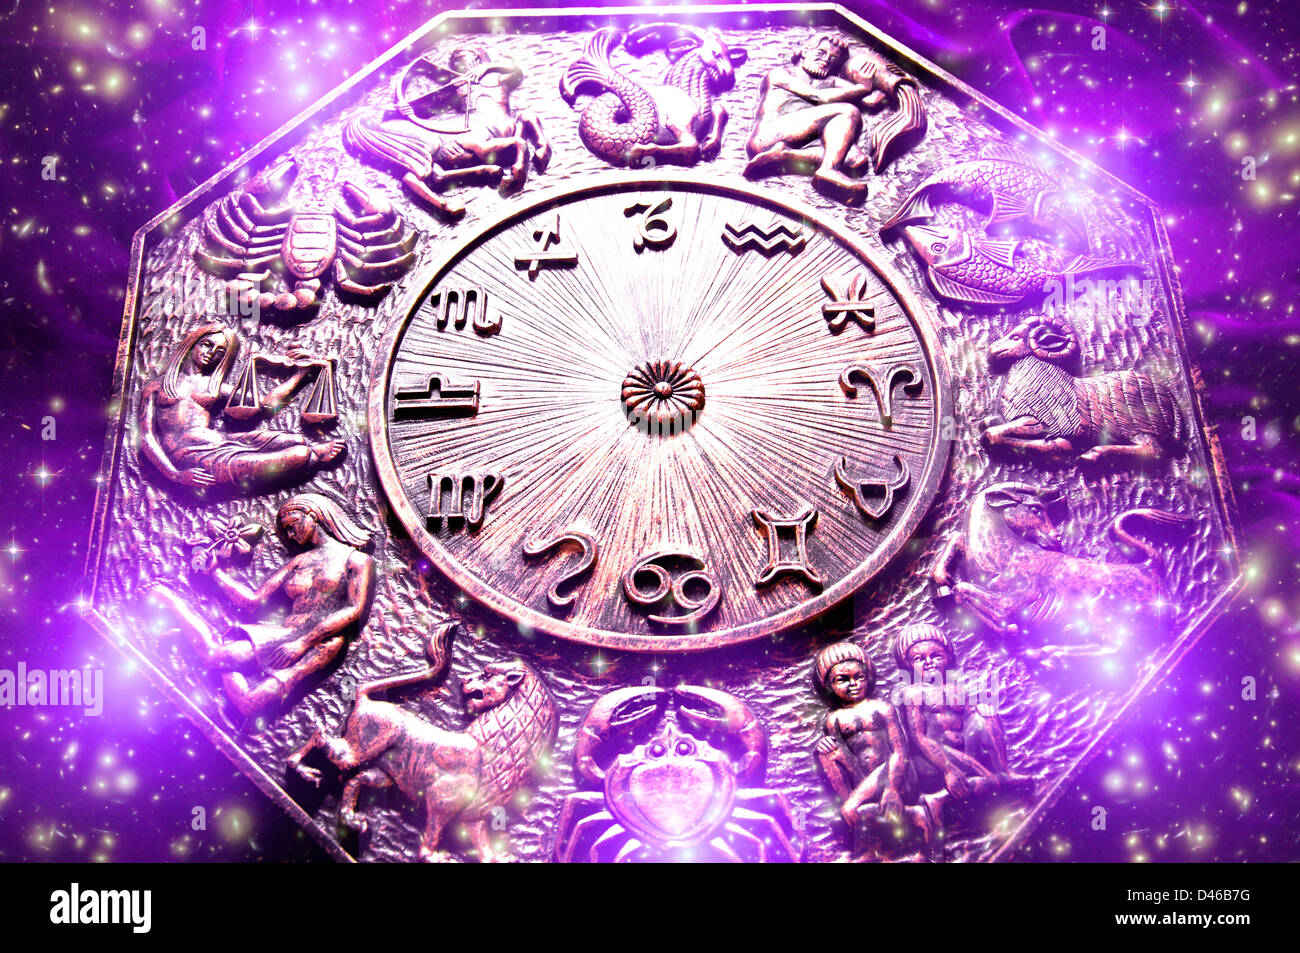 astrology and zodiac - Stock Image